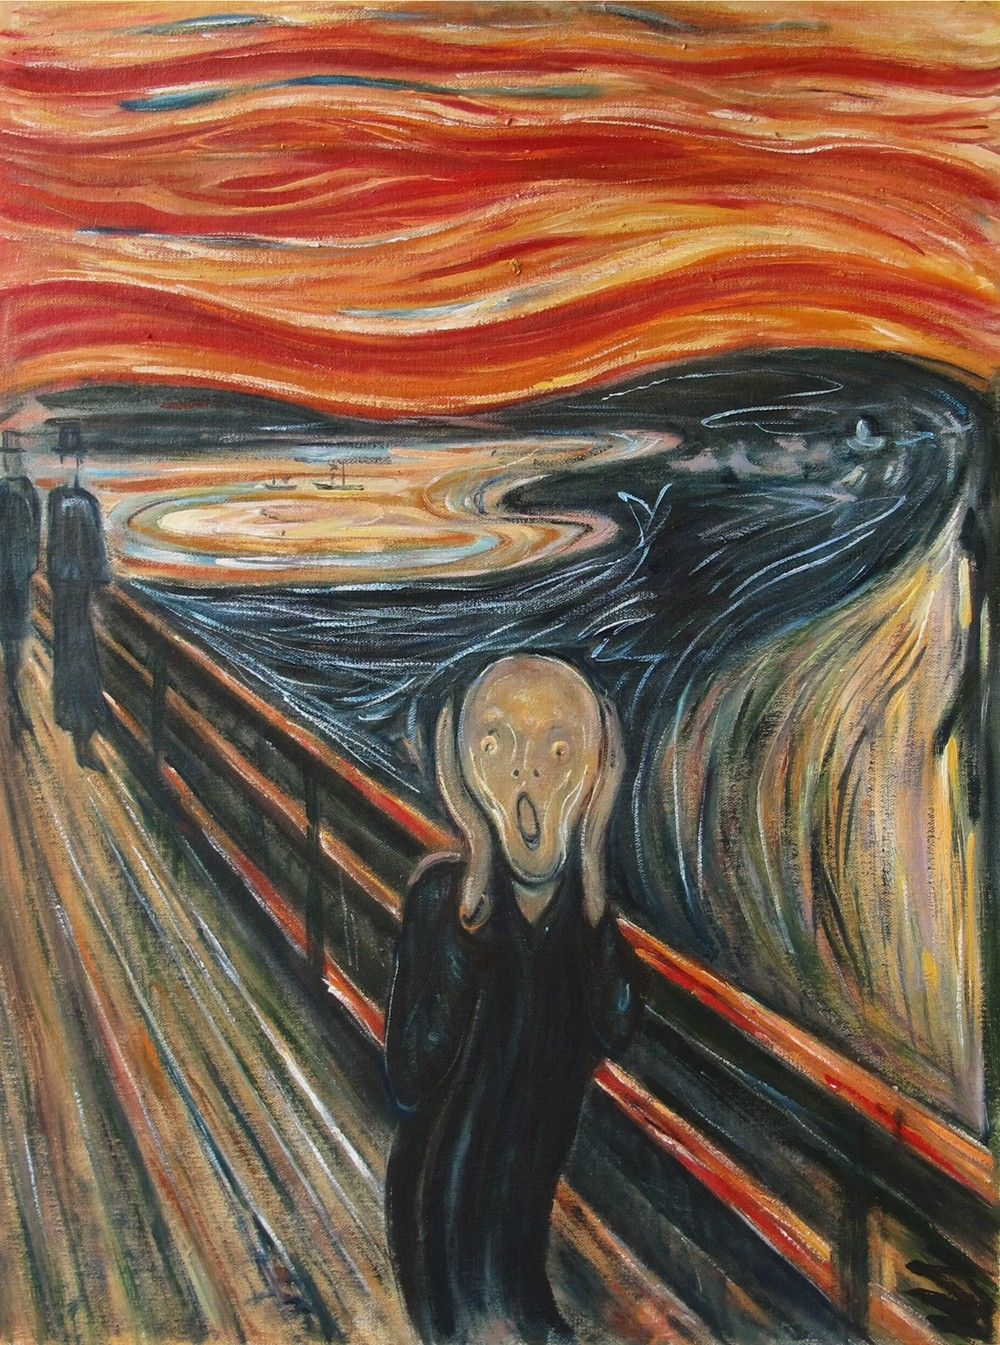 Oil painting (Scream) by Edvard Munch famous oil painting on canvas for wall dec...